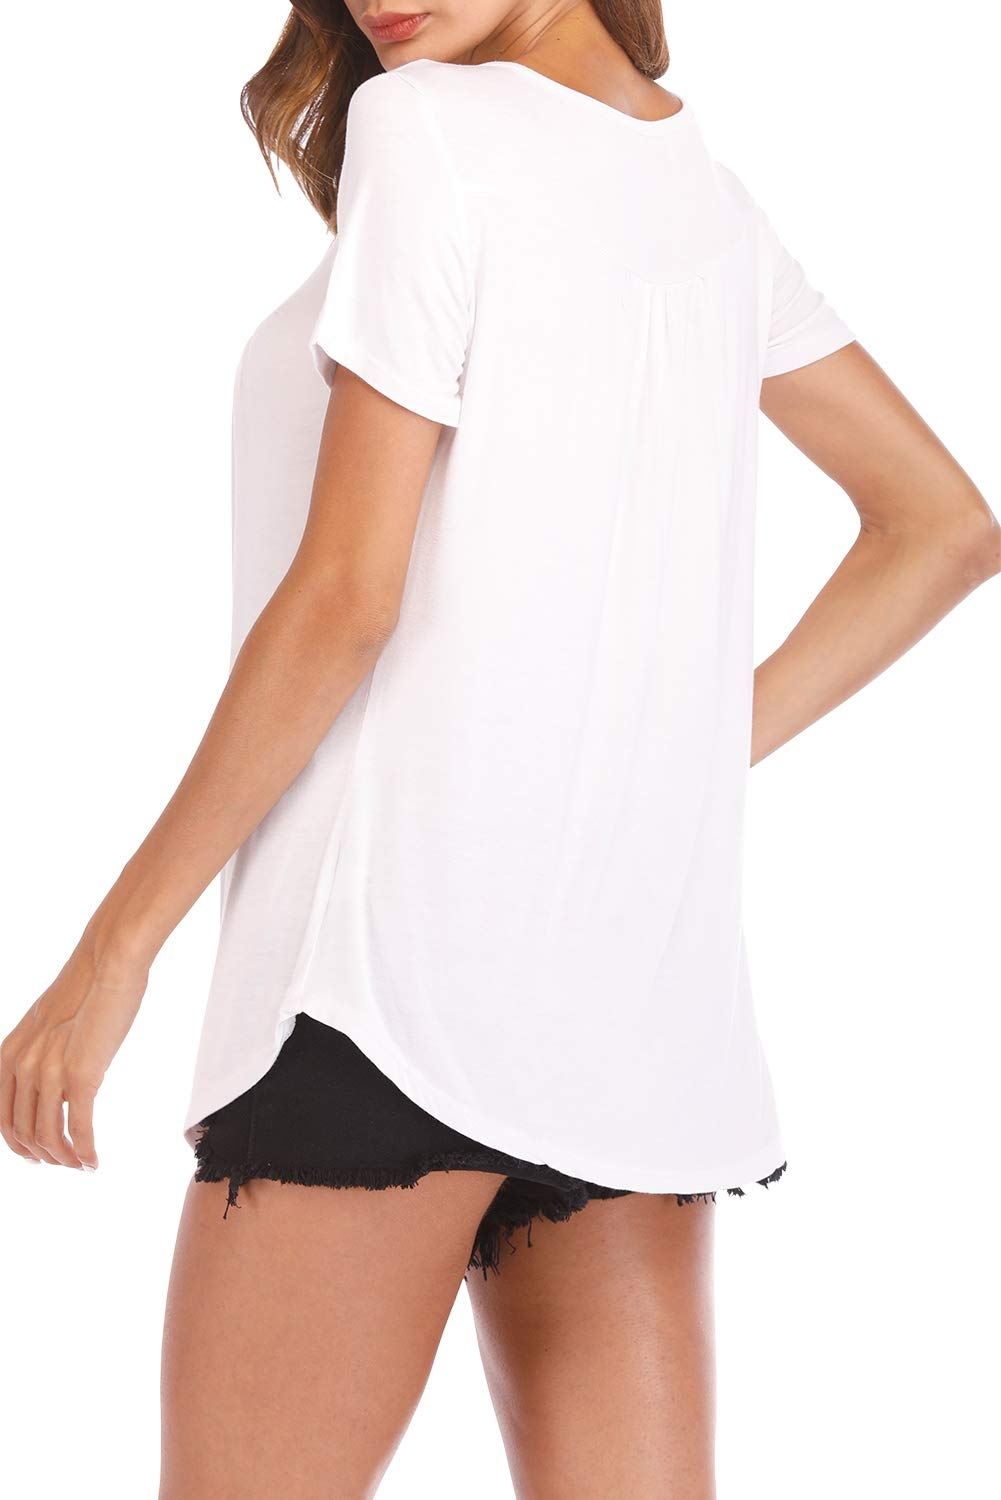 Fantastic Zone Womens Tops and Blouses Short Sleeve Tunics Plus Size Summer Shirts White XXL by Fantastic Zone (Image #5)